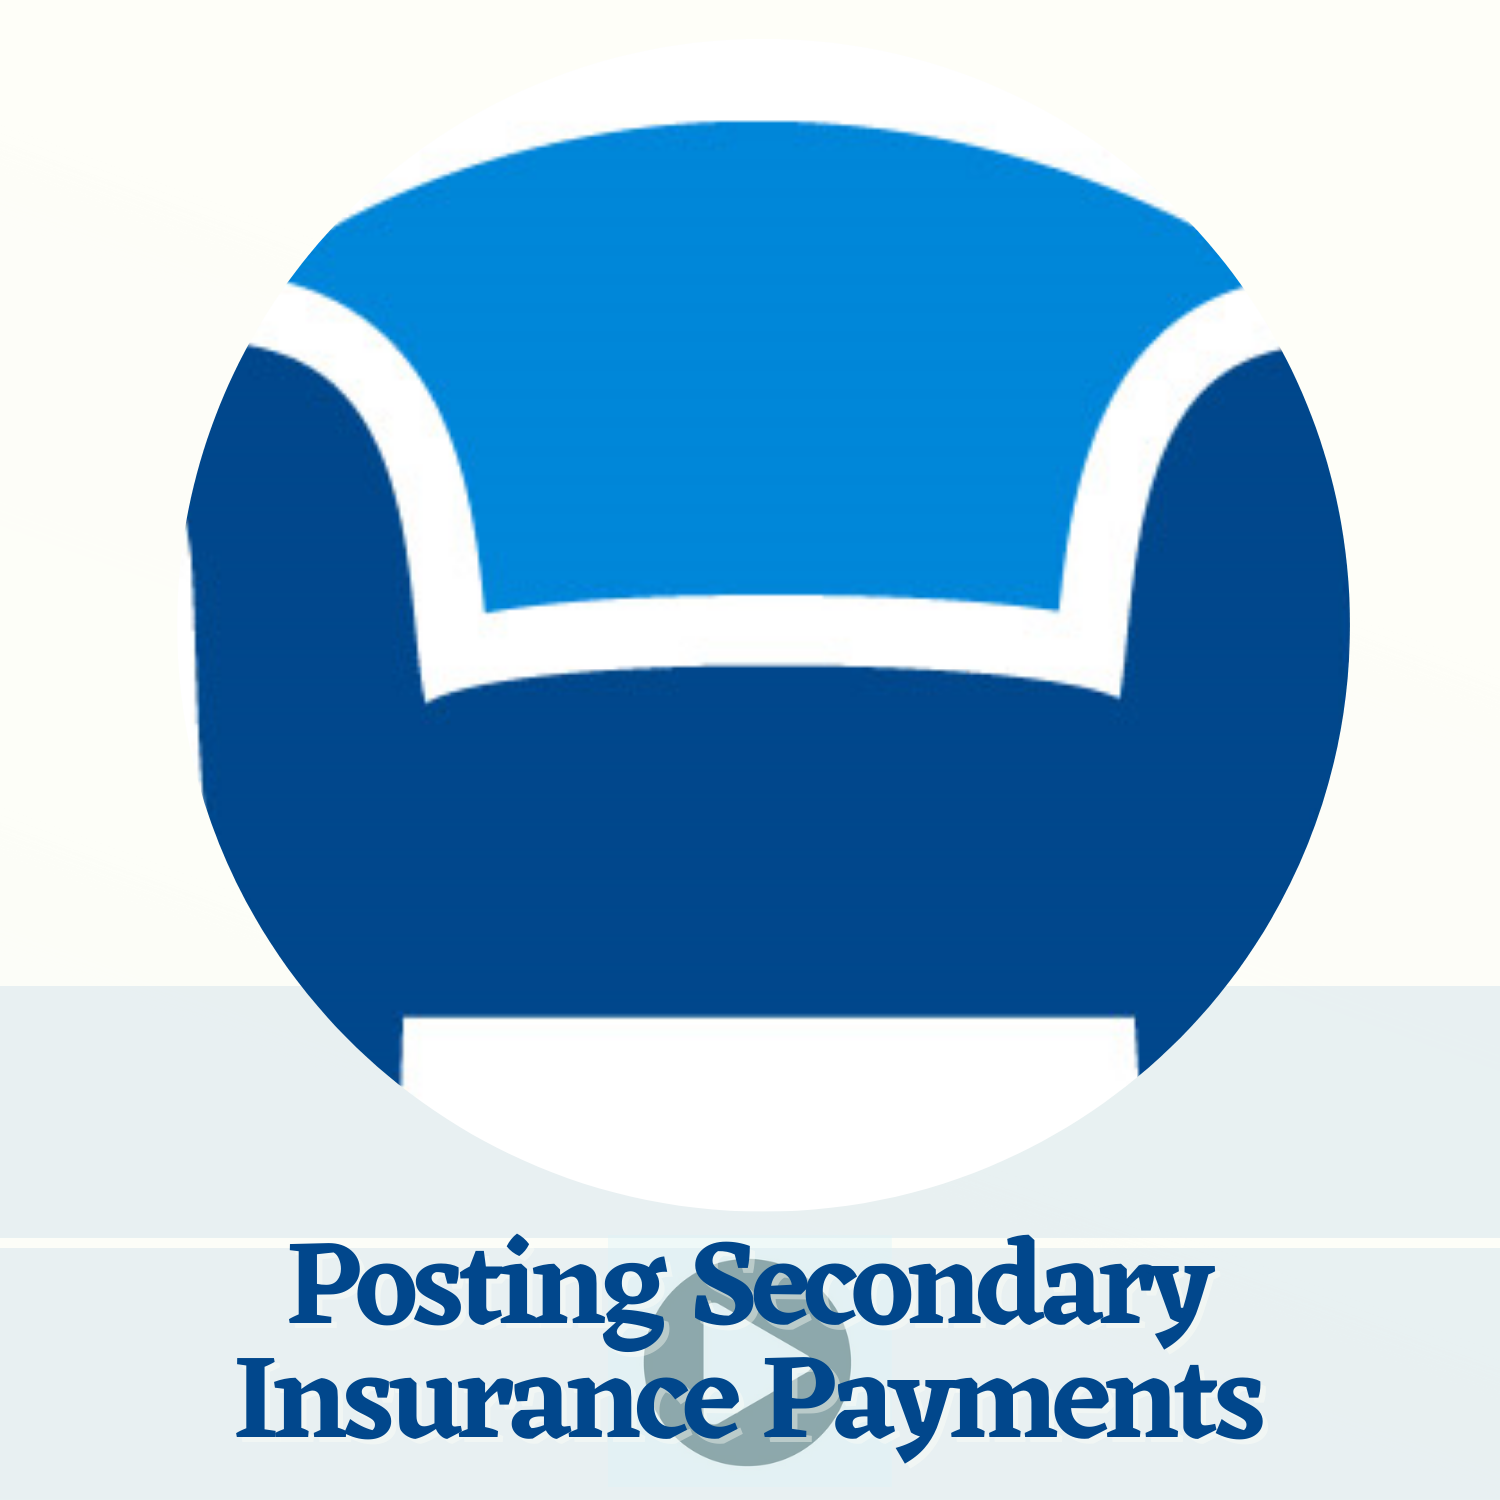 Posting Secondary Insurance Payments